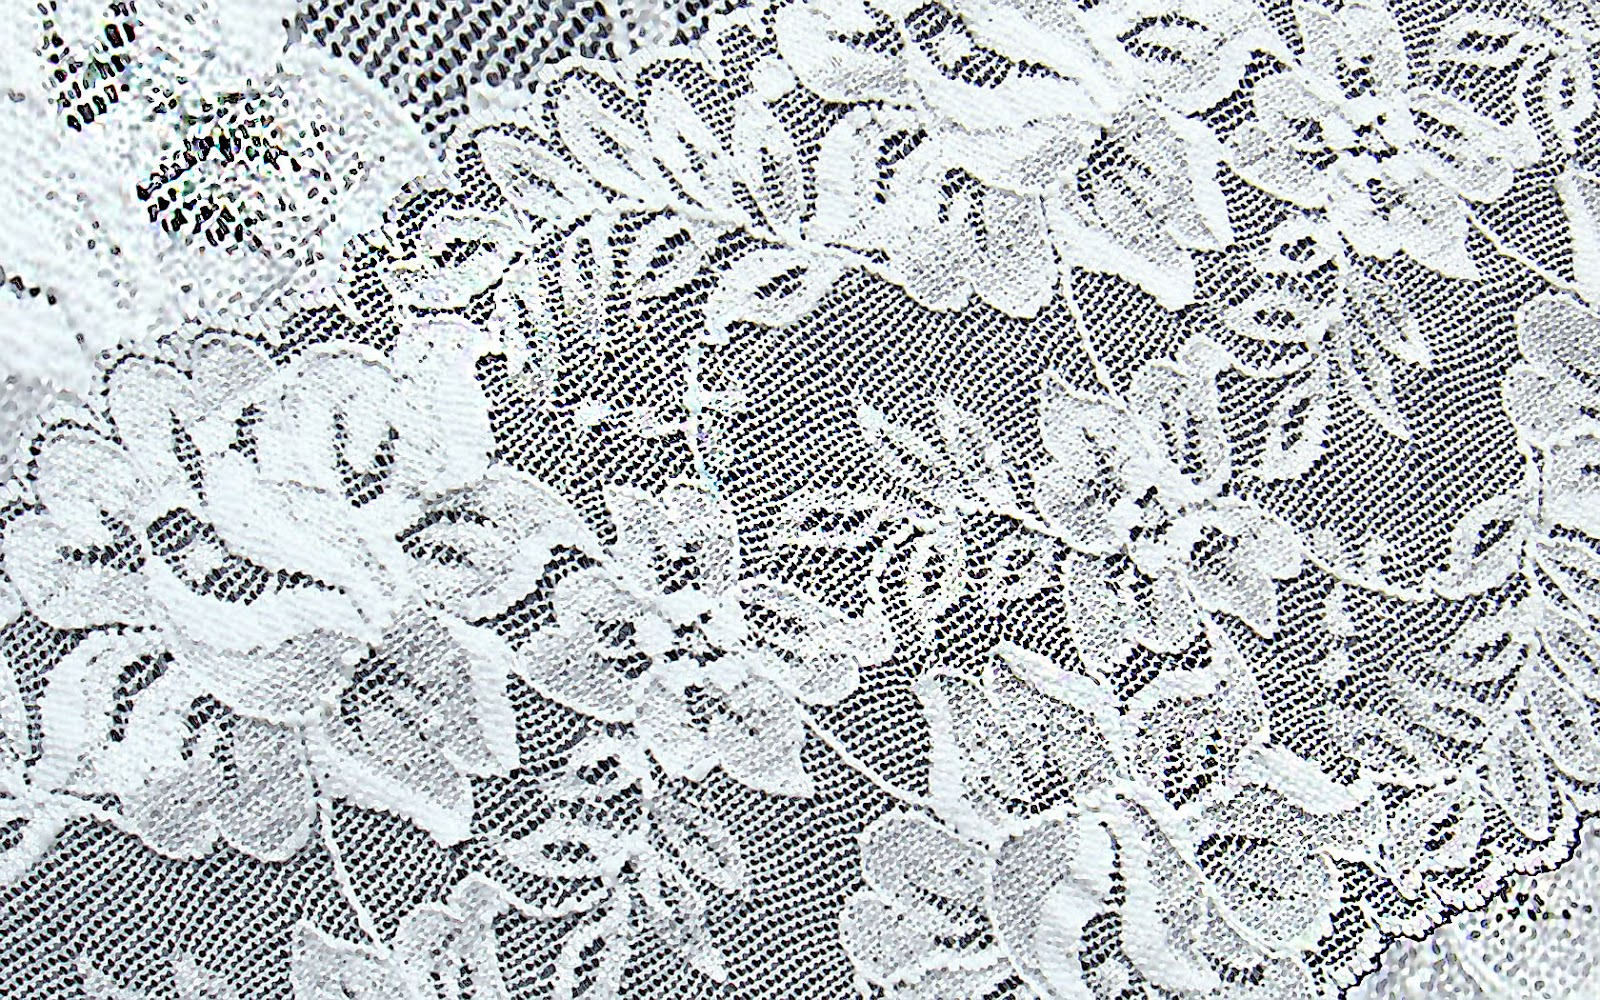 white lace tumblr backgrounds - photo #13